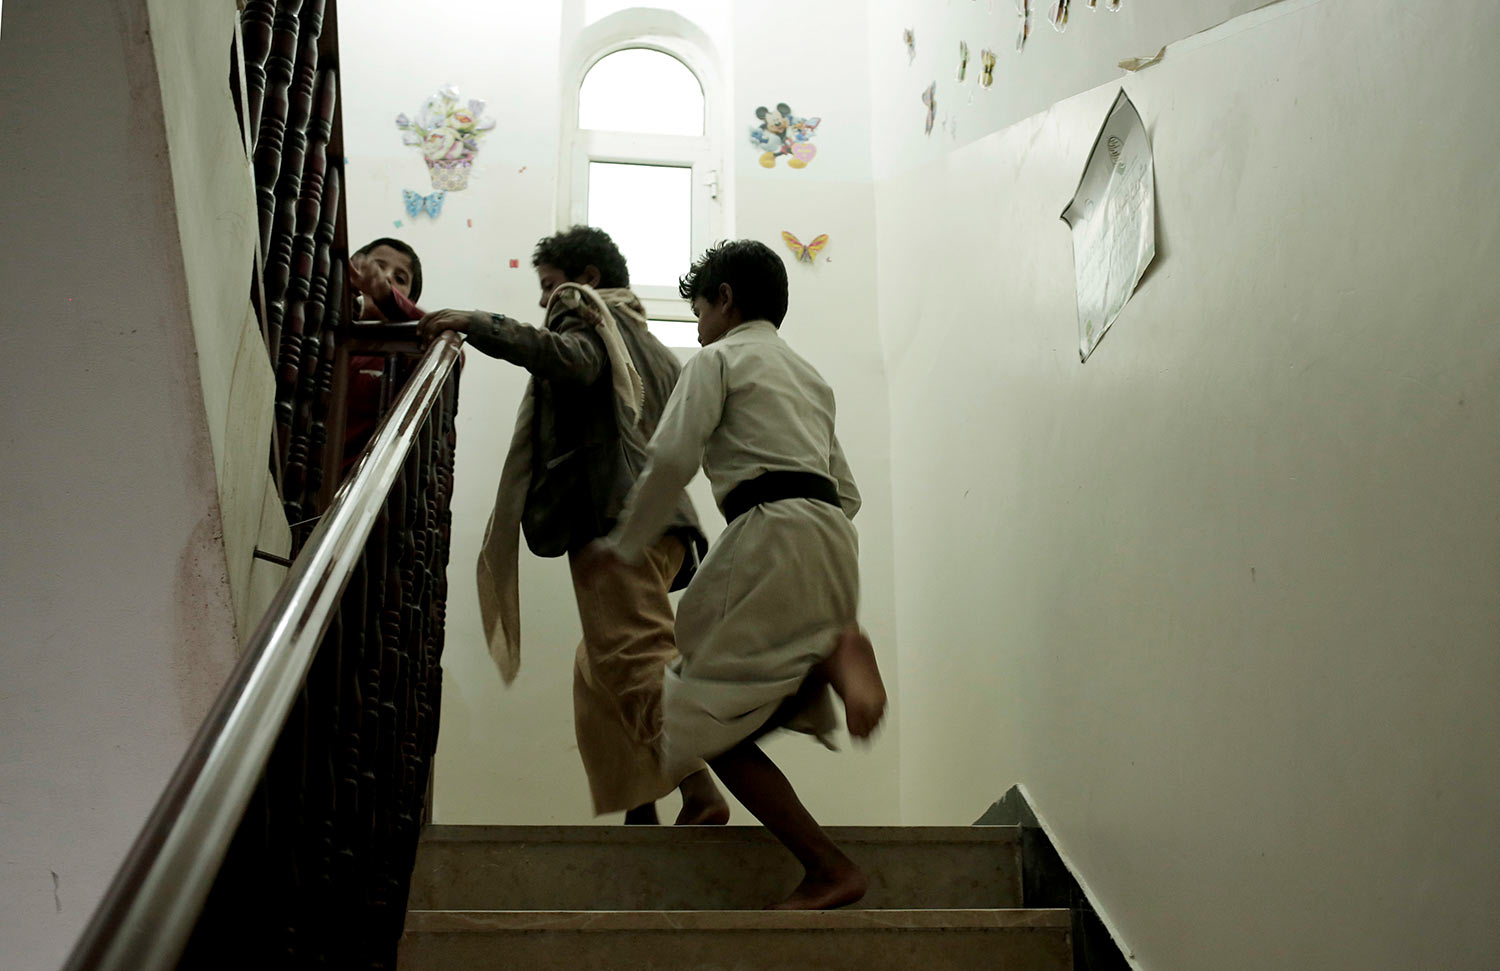 Boys run up the stairs at a rehabilitation center for former child soldiers in Marib, Yemen, in this July 25, 2018, photo. (AP Photo/Nariman El-Mofty)